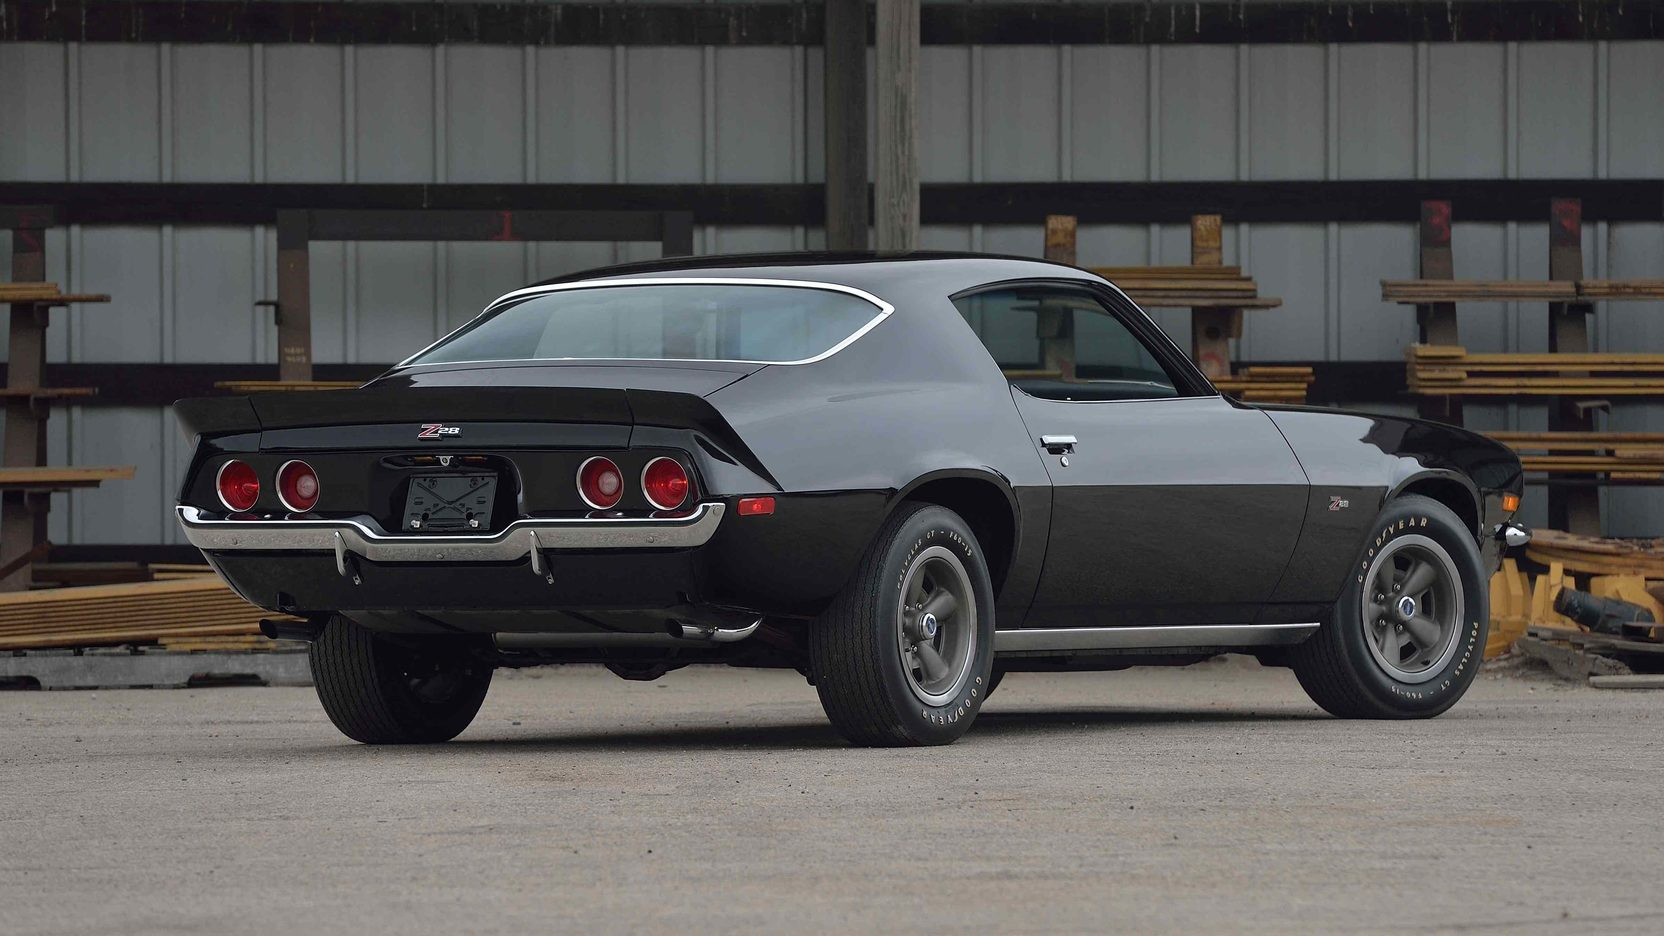 1970 Chevrolet Camaro Z/28 rear 3/4